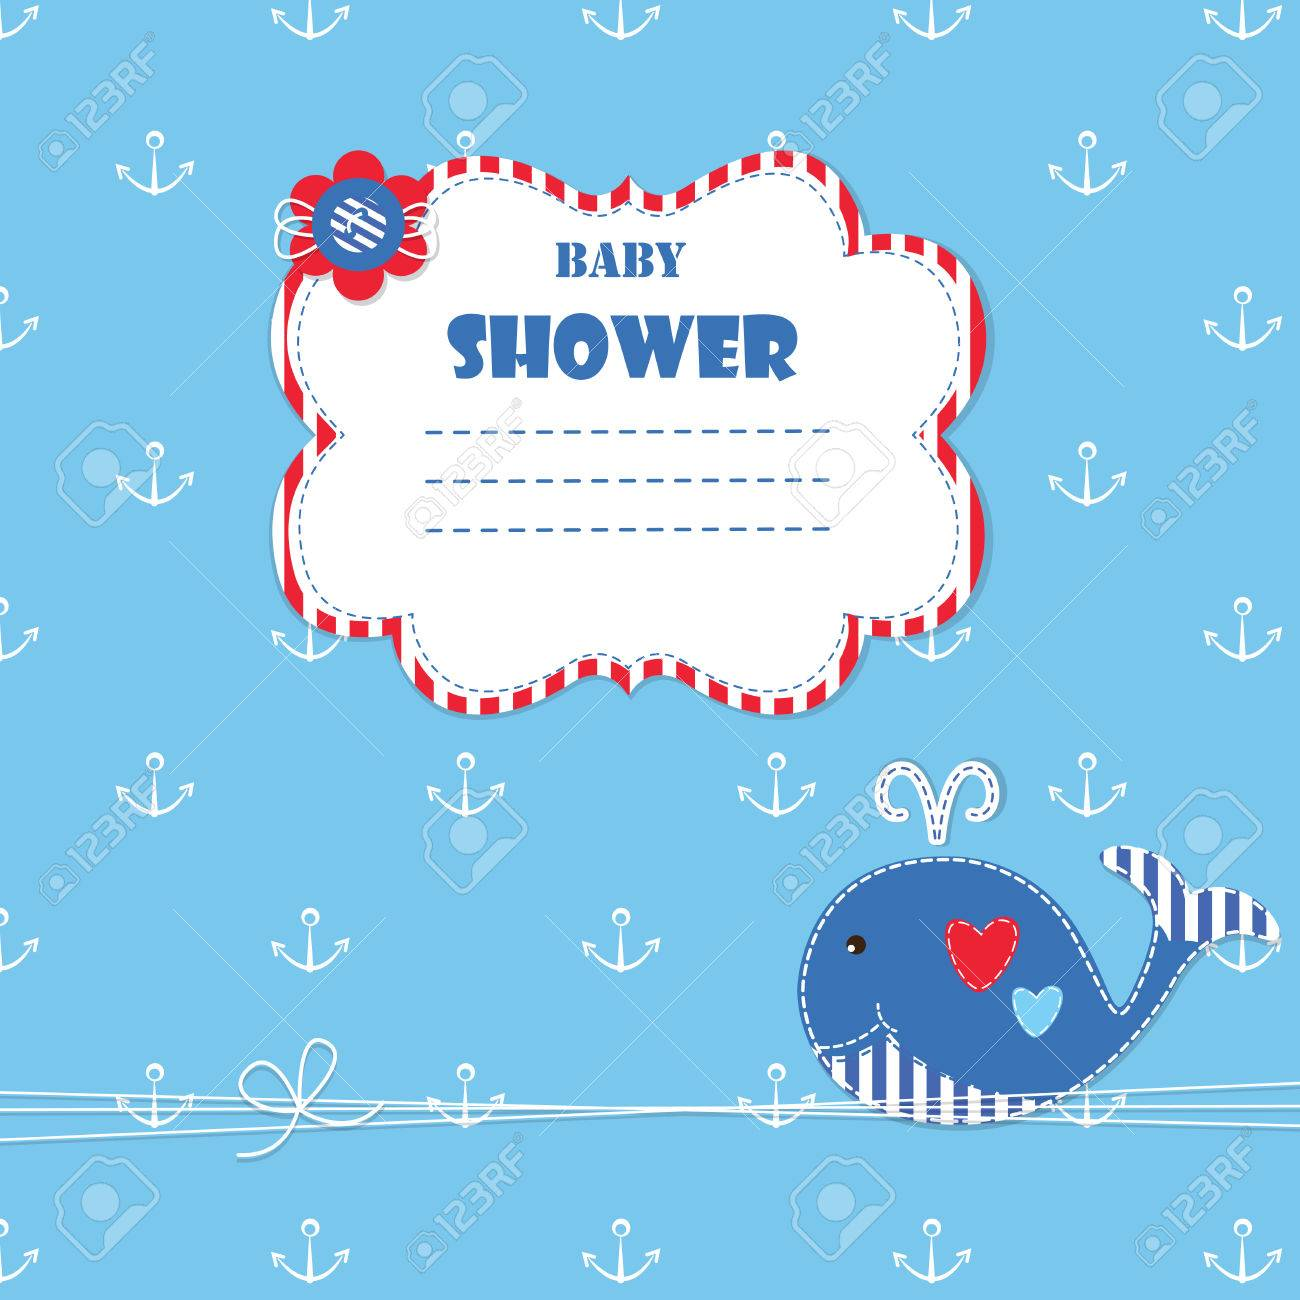 Baby background with cute ewhale for baby shower invitation baby background with cute ewhale for baby shower invitation greetings card stock vector kristyandbryce Image collections